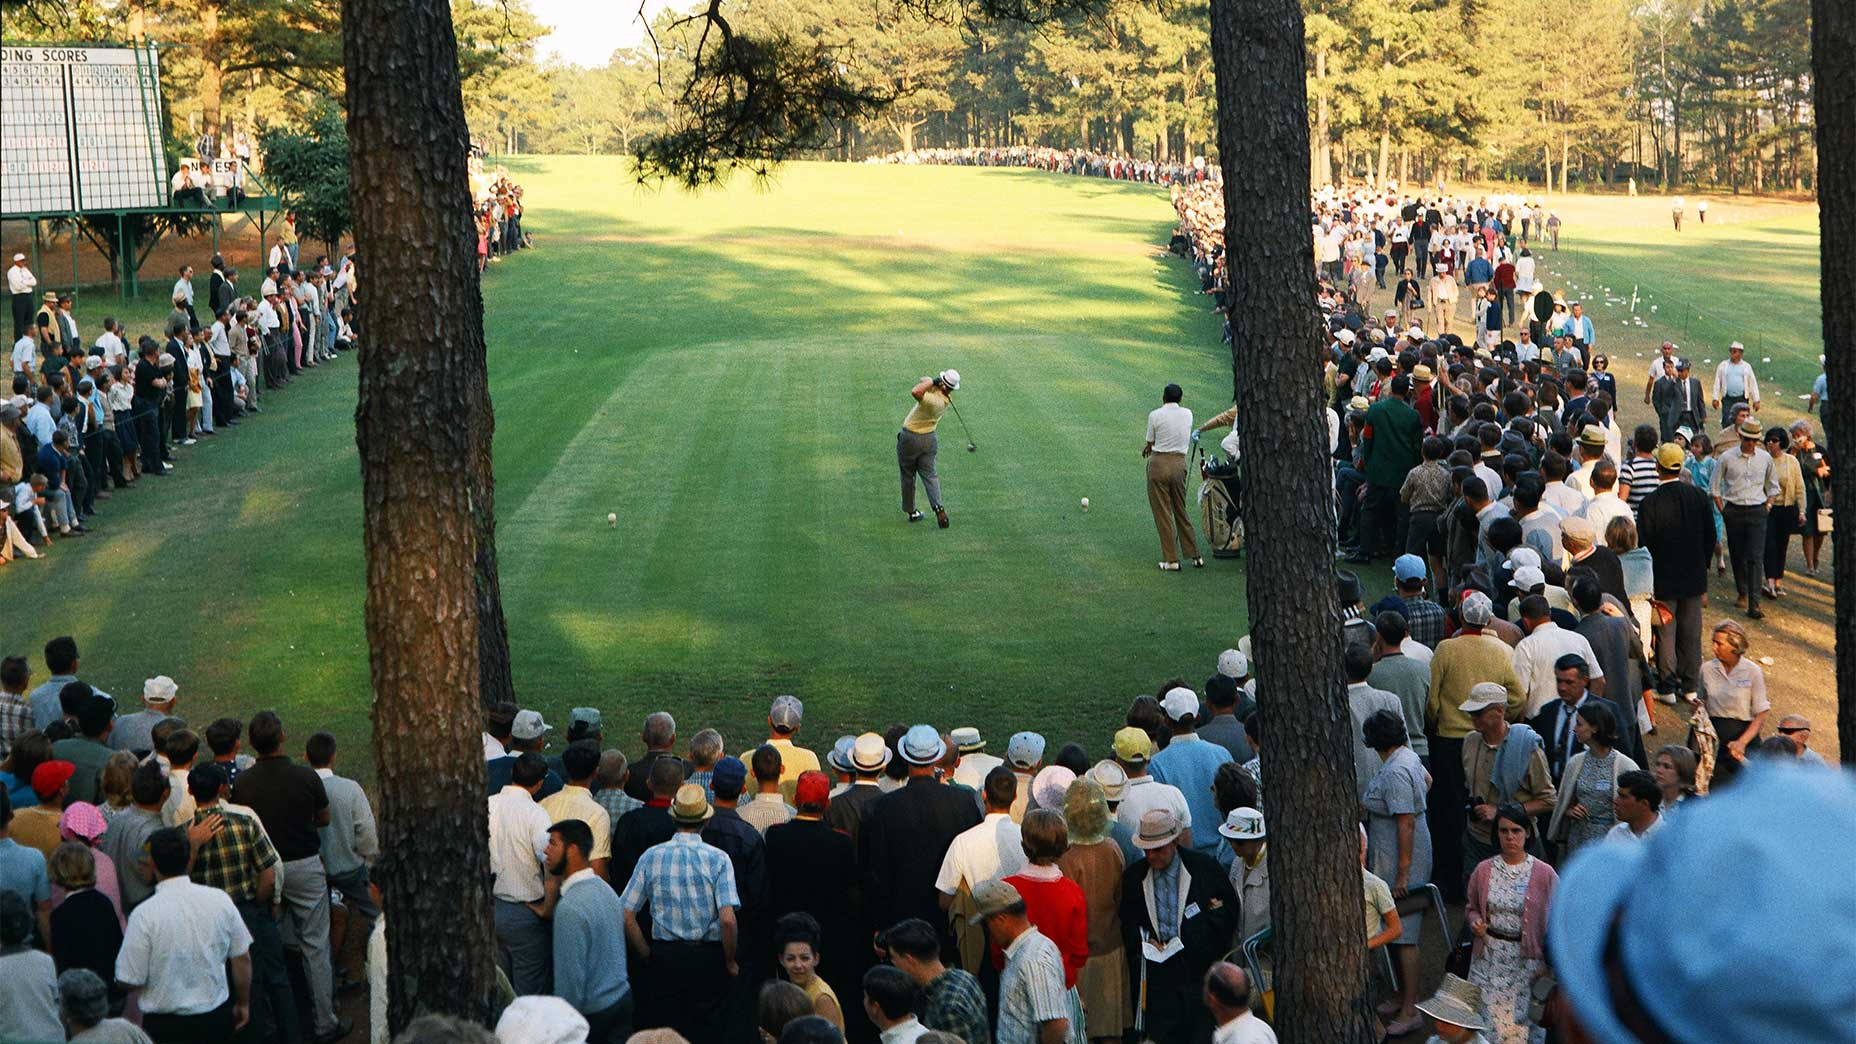 Jack Nicklaus tees off at the 1966 Masters.